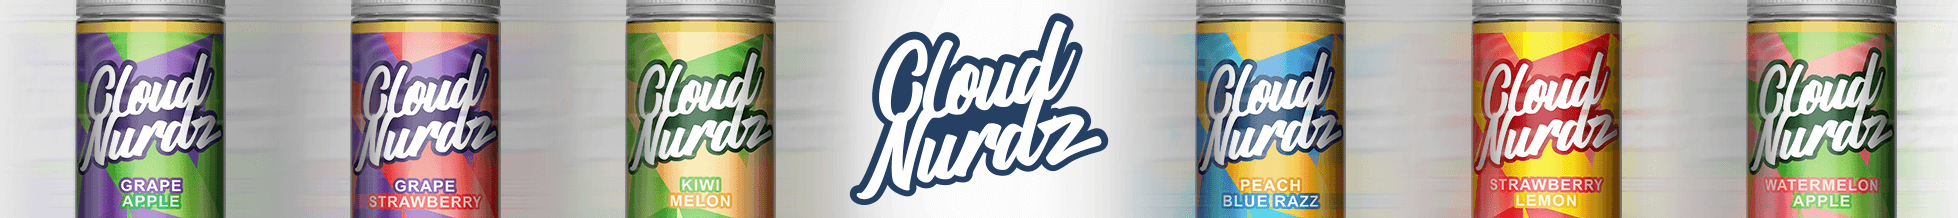 cloud-nurdz-new-logo.png